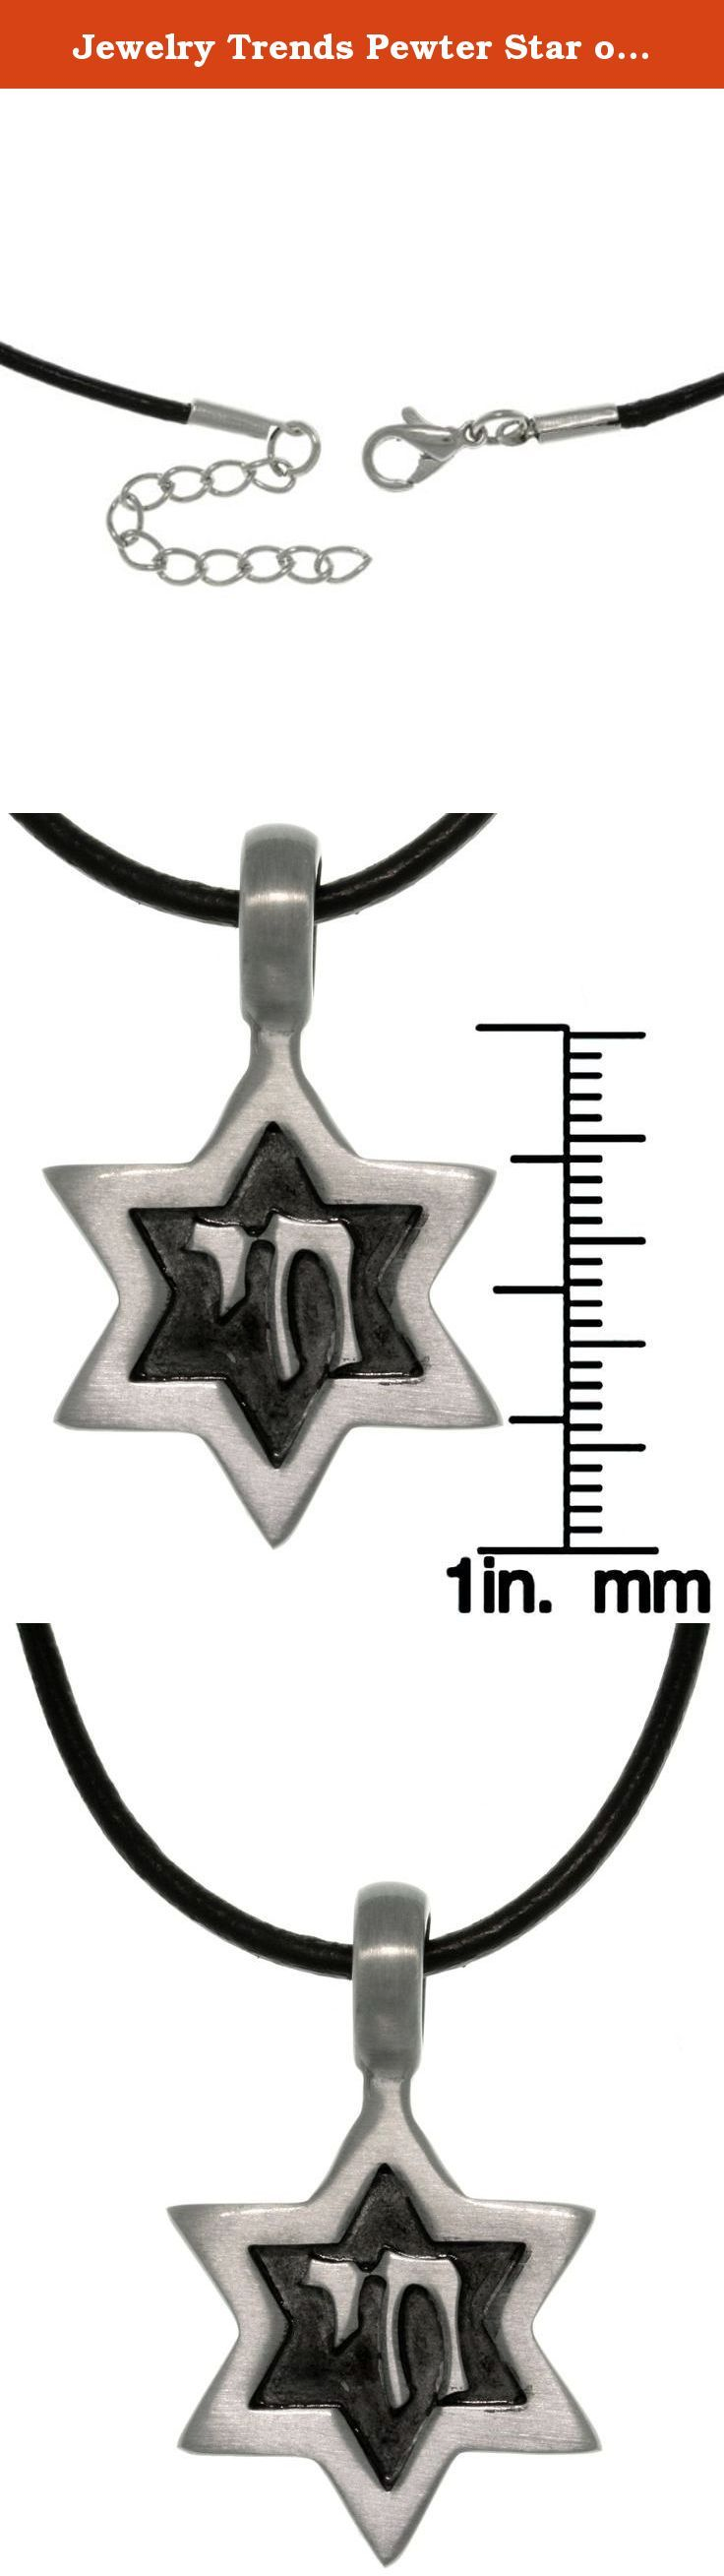 Jewelry Trends Pewter Star of David Pendant with 18 Inch Black Leather Cord Necklace. This religious pendant features a Star of David shape with the Chai symbol, meaning life, in the antiqued center. This pewter pendant comes strung on an 18-inch black leather cord with a rhodium-plated brass lobster claw clasp.